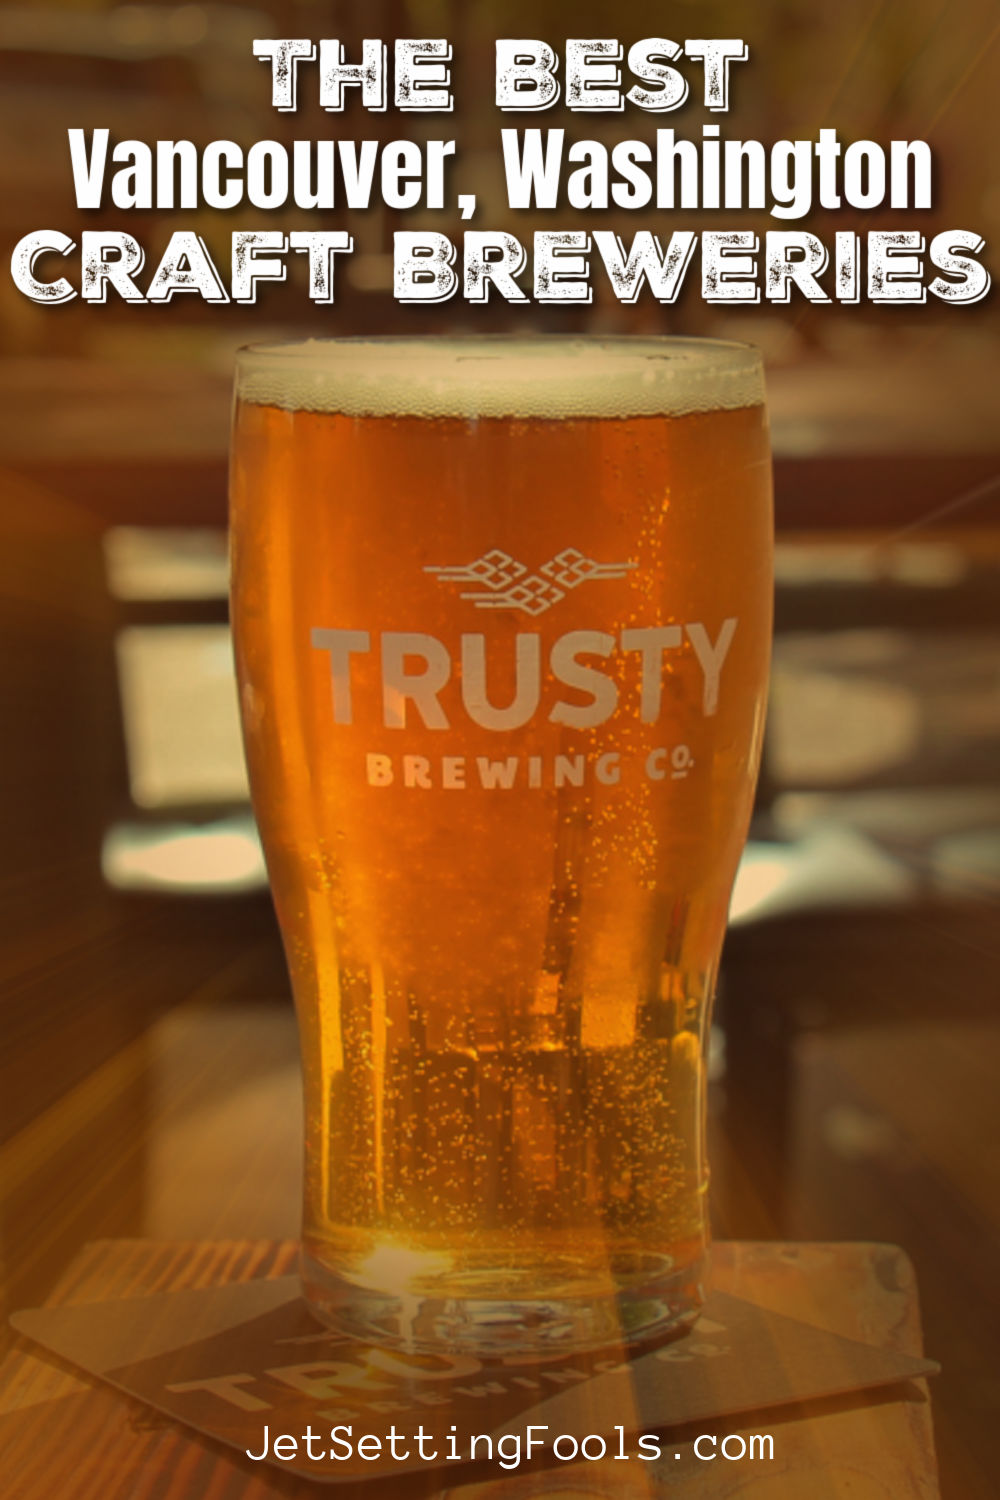 The Best Vancouver, Washington Craft Breweries by JetSettingFools.com